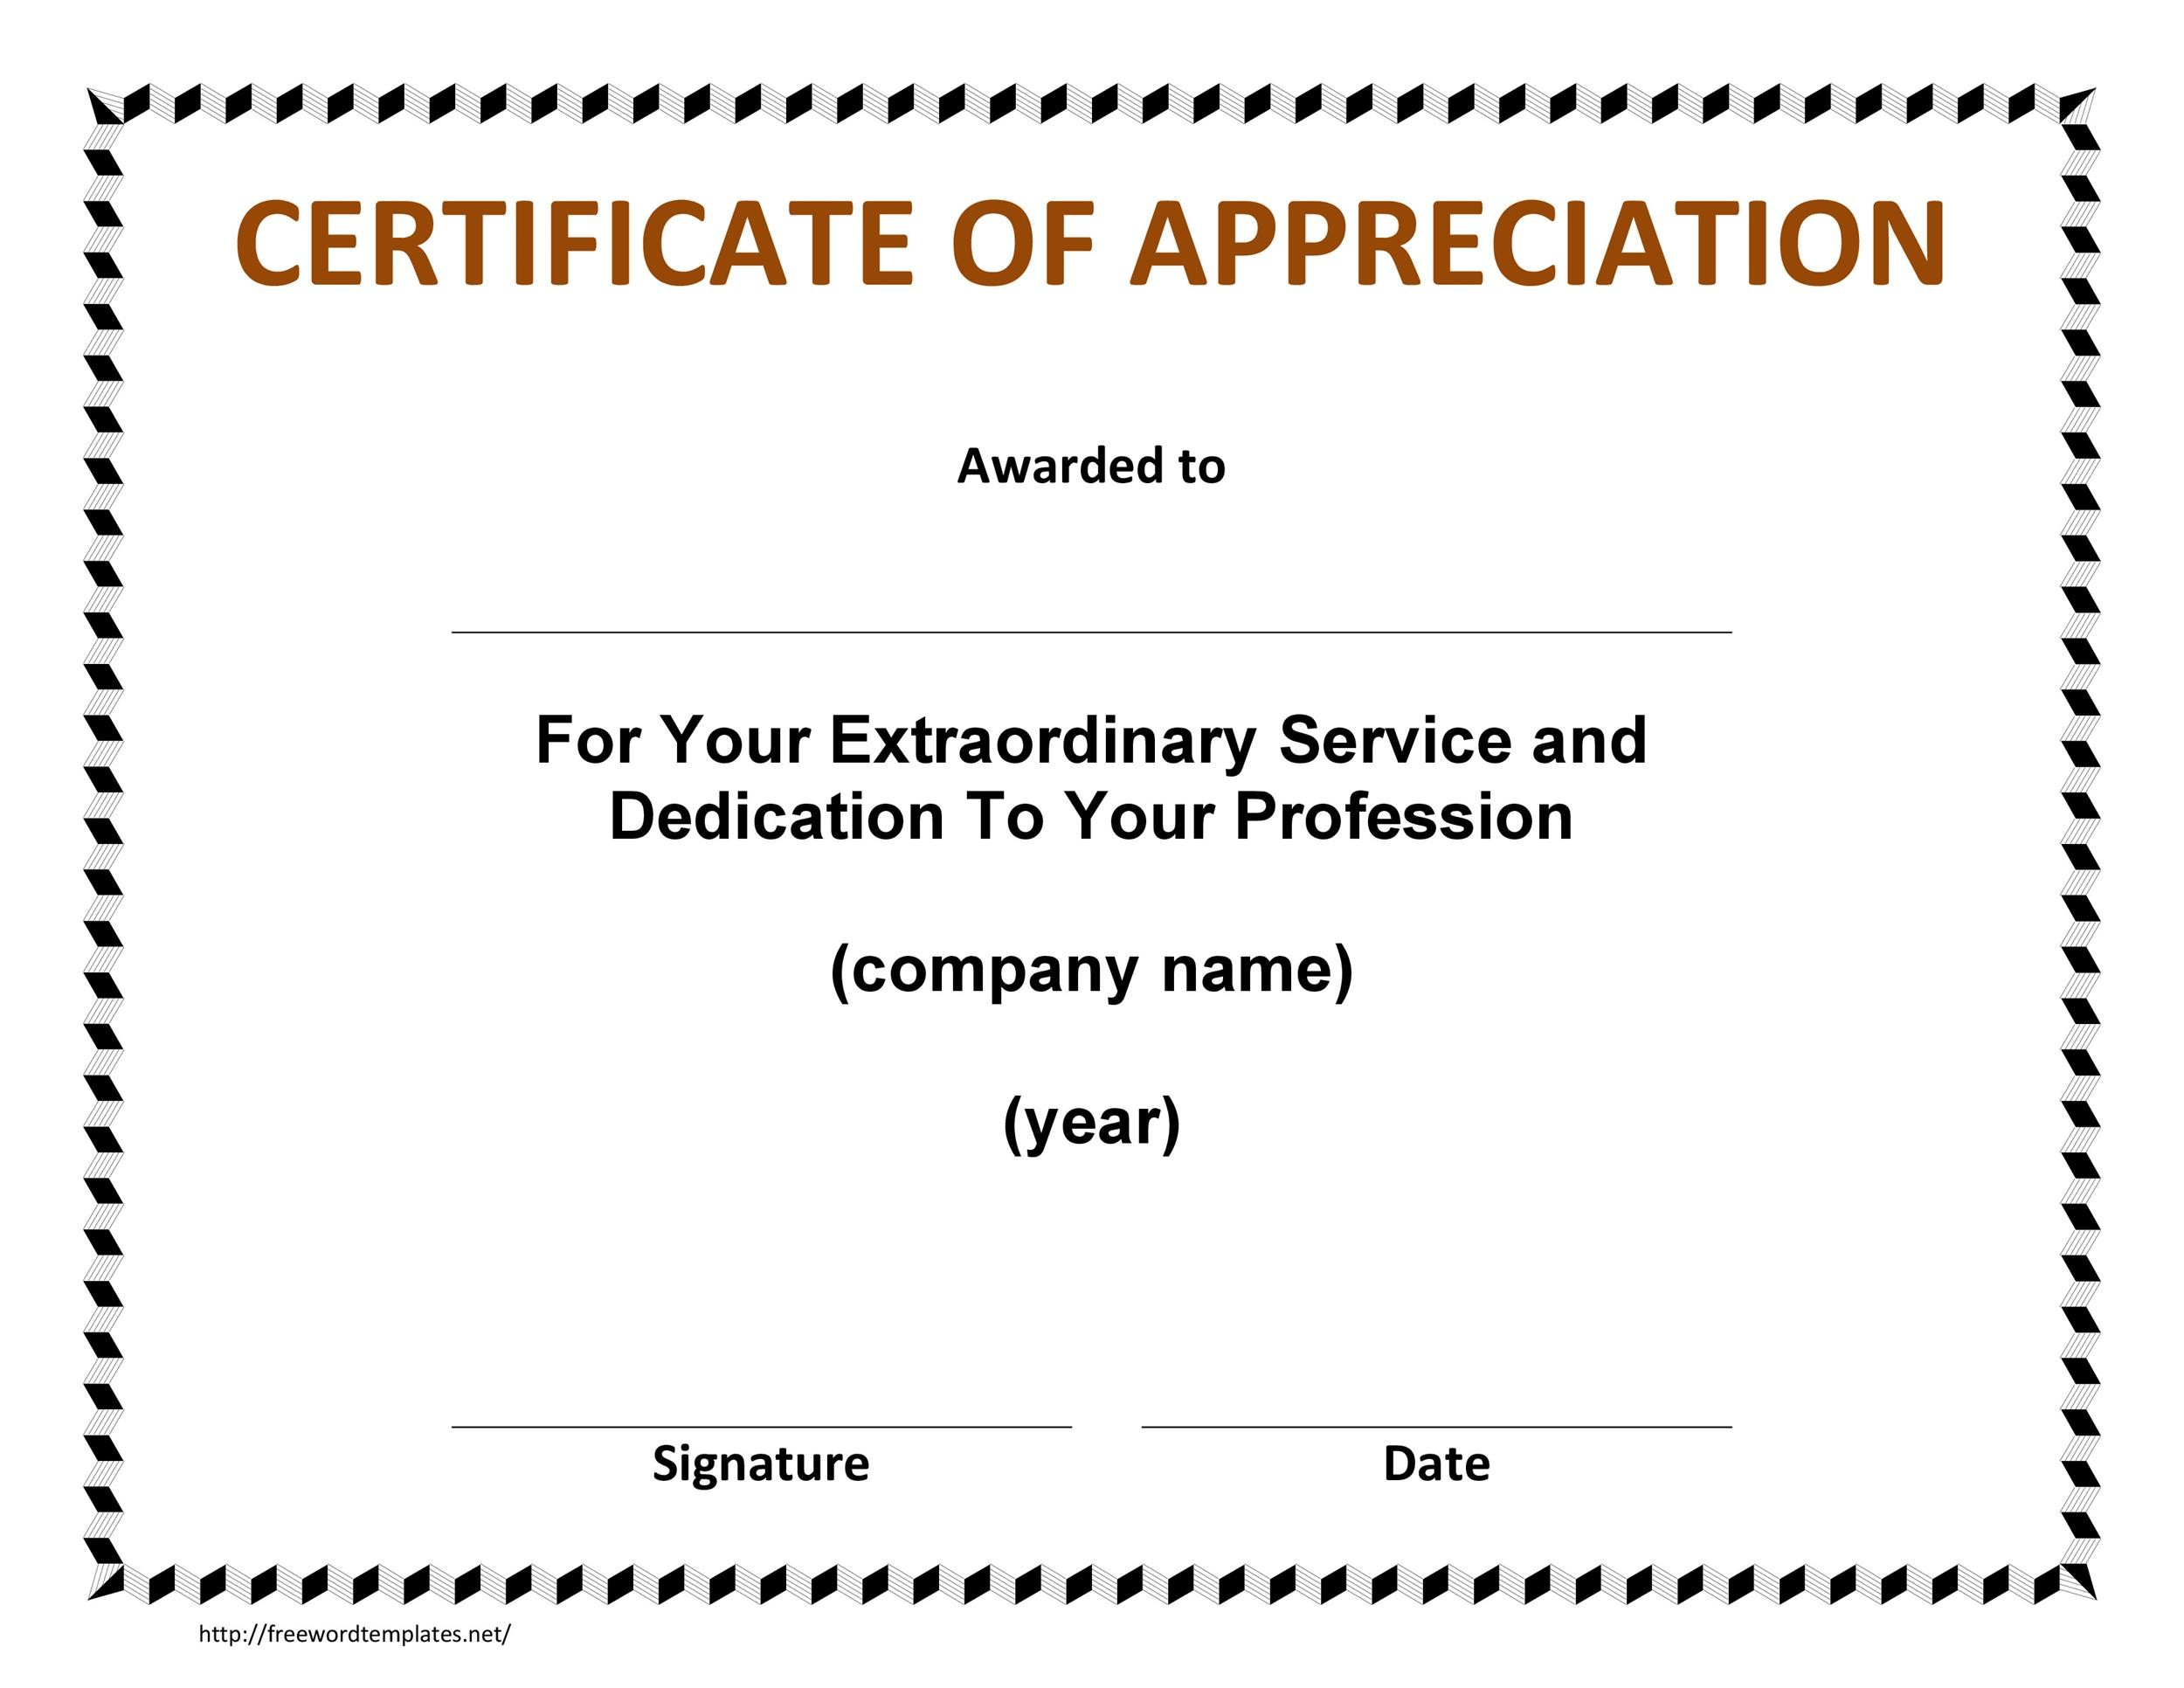 30 Free Certificate of Appreciation Templates and Letters - certification templates